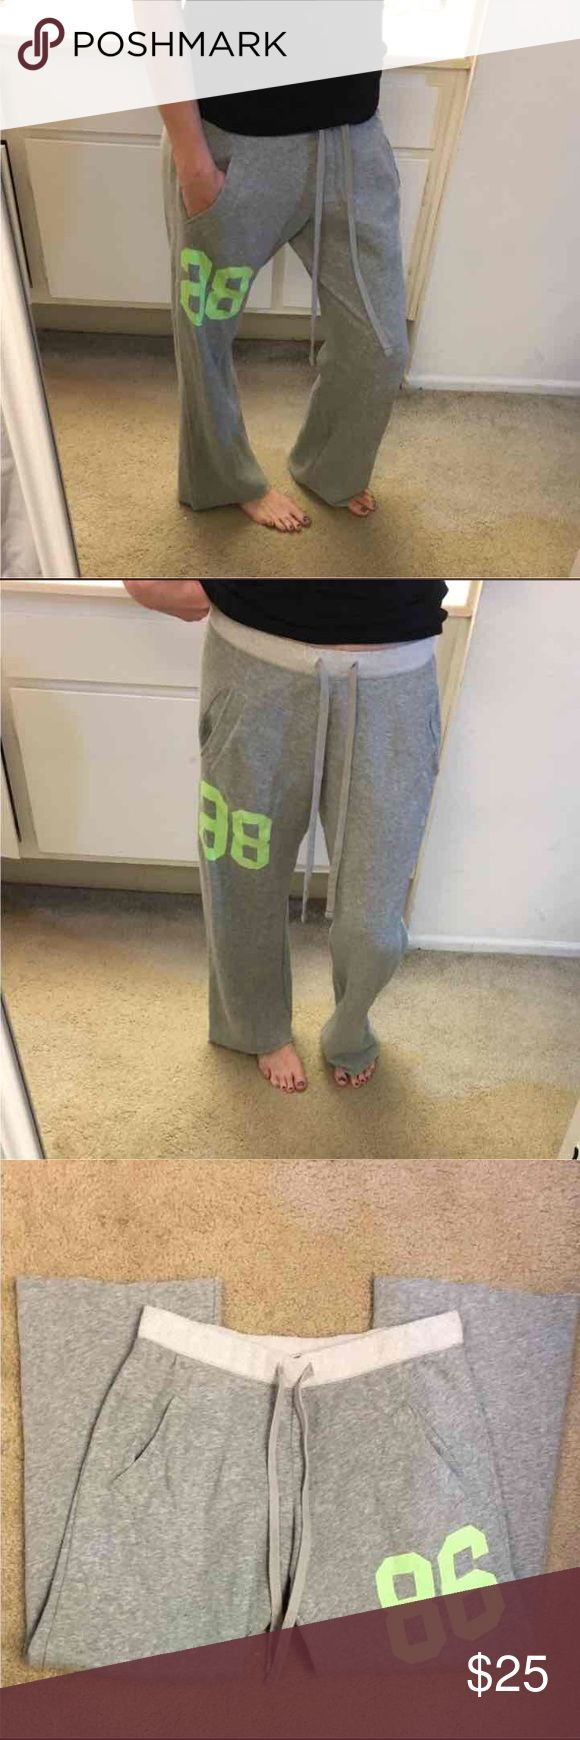 """Great cond VS PINK boyfriend sweatpants Super cute great condition size extra small but can fit small also elastic and tie waist has pockets in front and LOVE PINK on butt minor cracking to 88 But not noticeable when wearing inseam is 28 1/2"""" PINK Victoria's Secret Pants"""